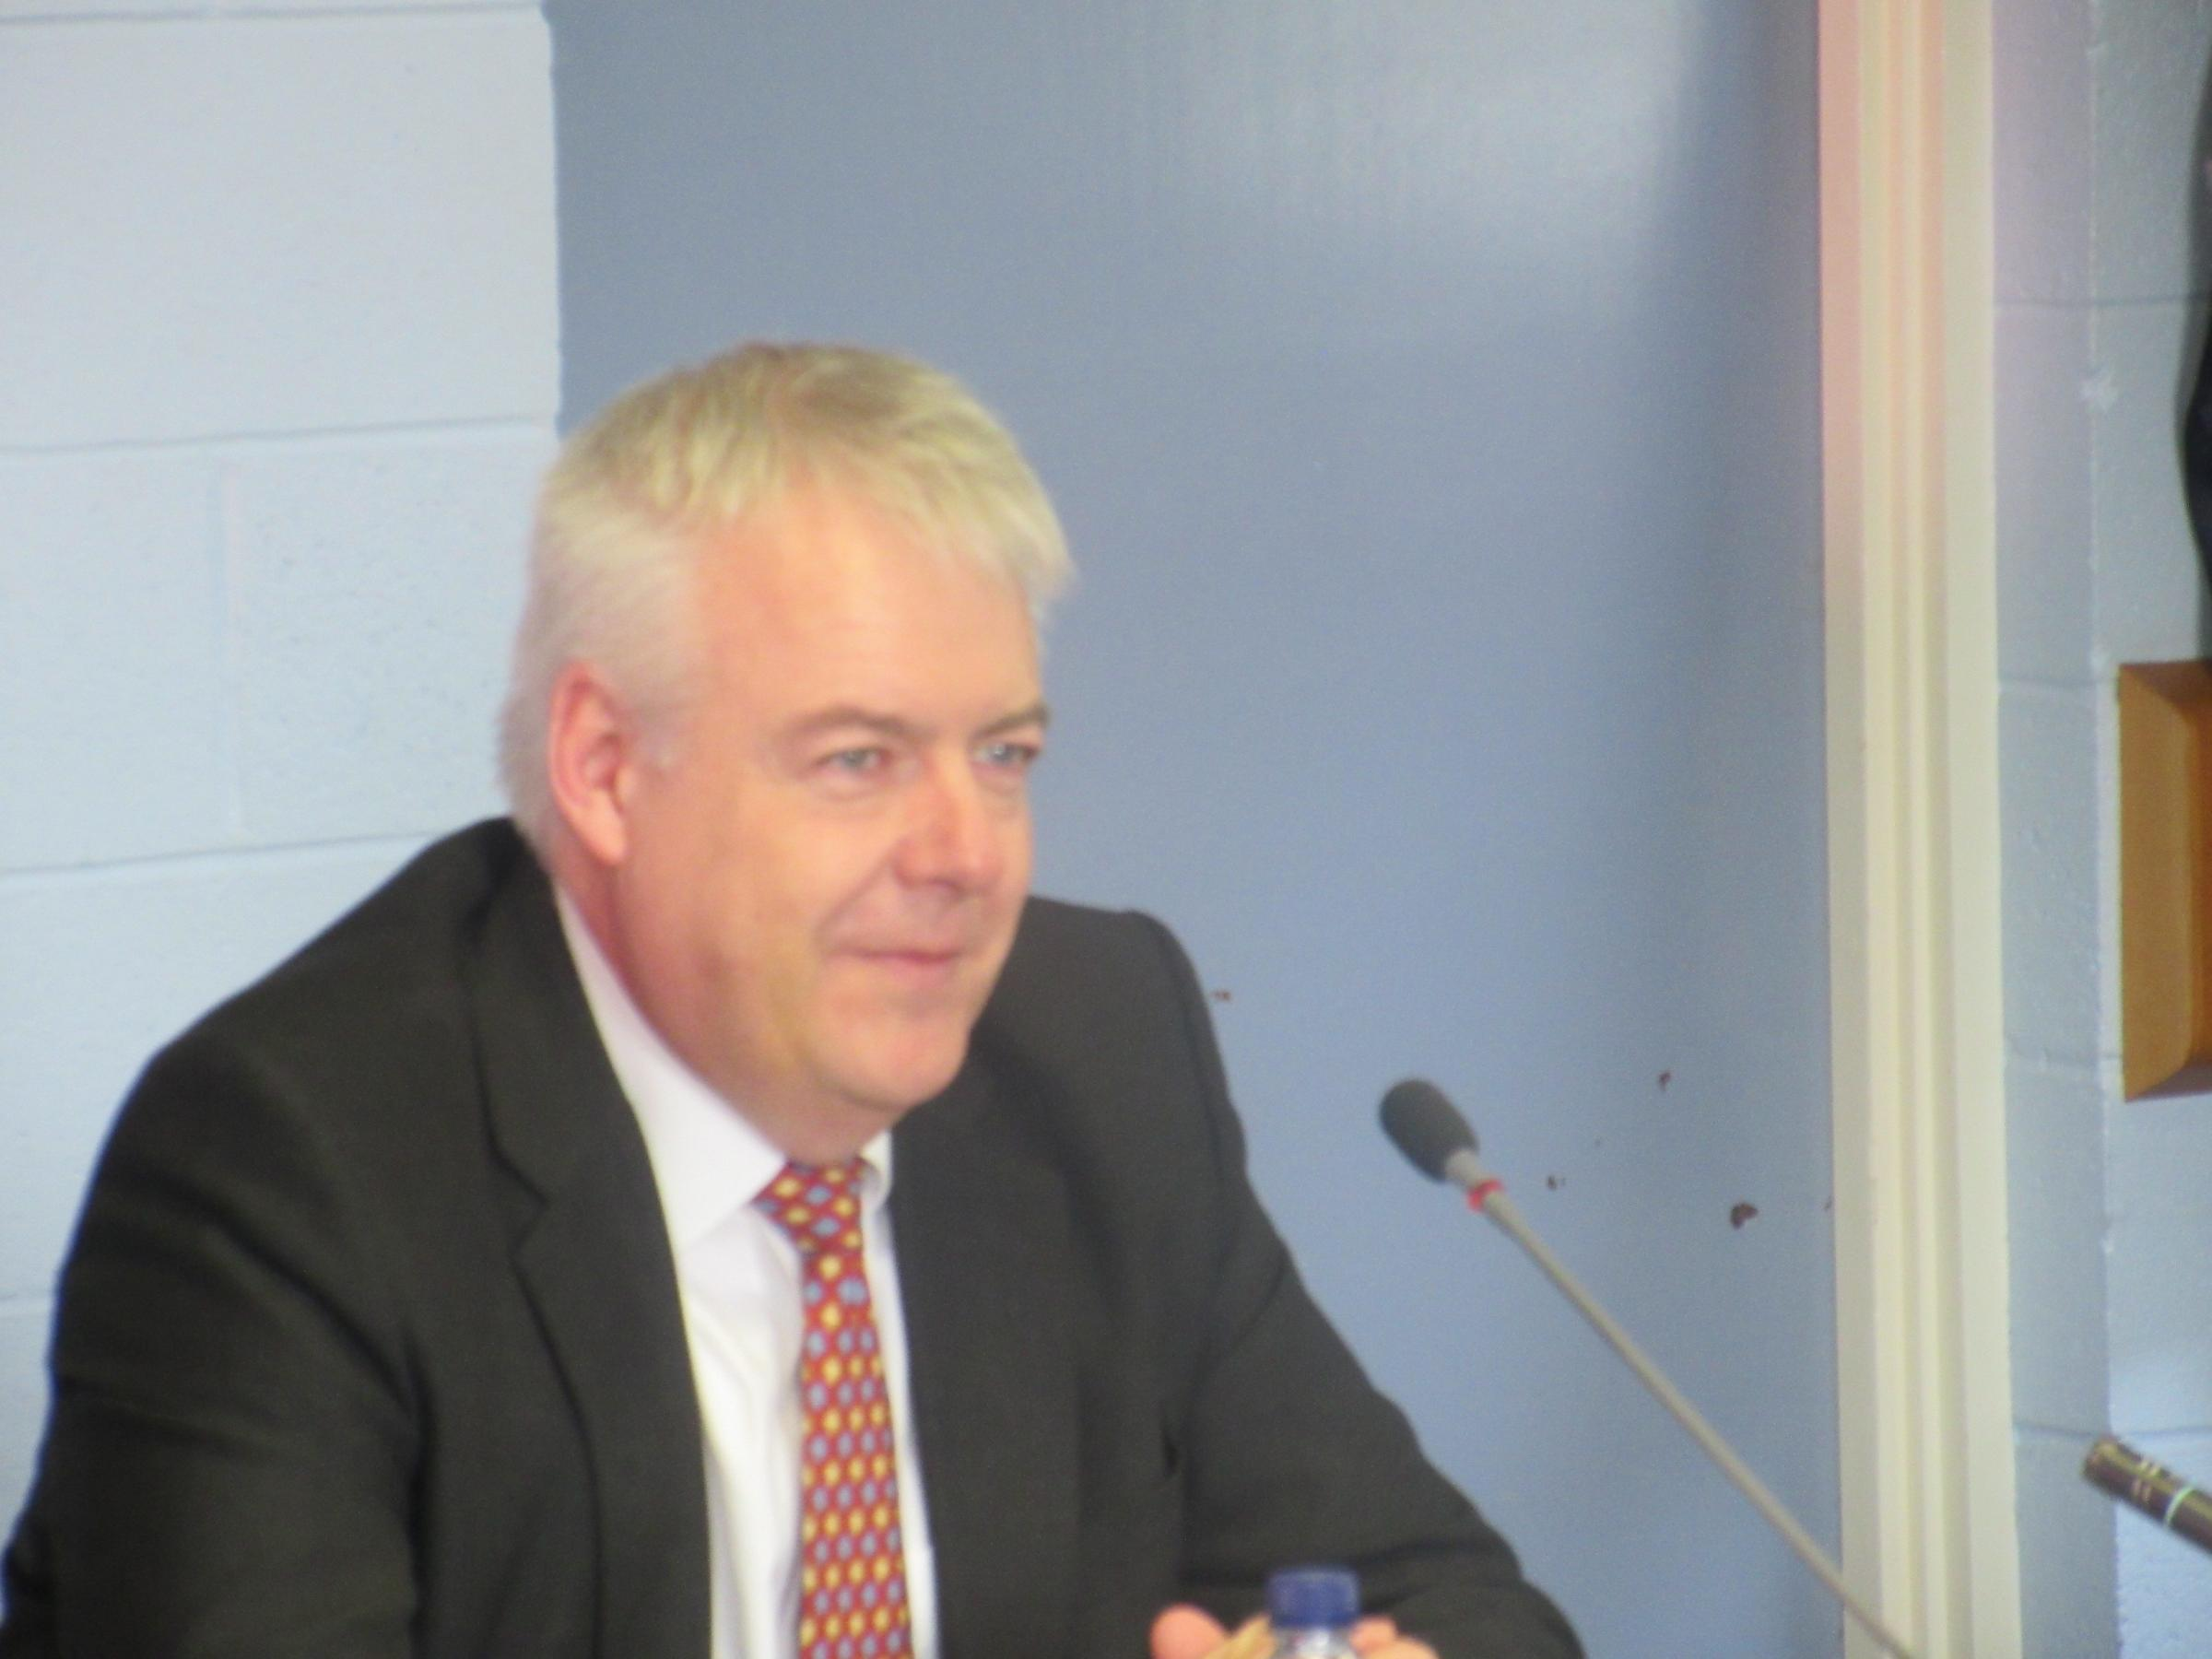 First Minister of Wales, Carwyn Jones, was in Newtown for a scrutiny meeting of the Welsh Assembly.